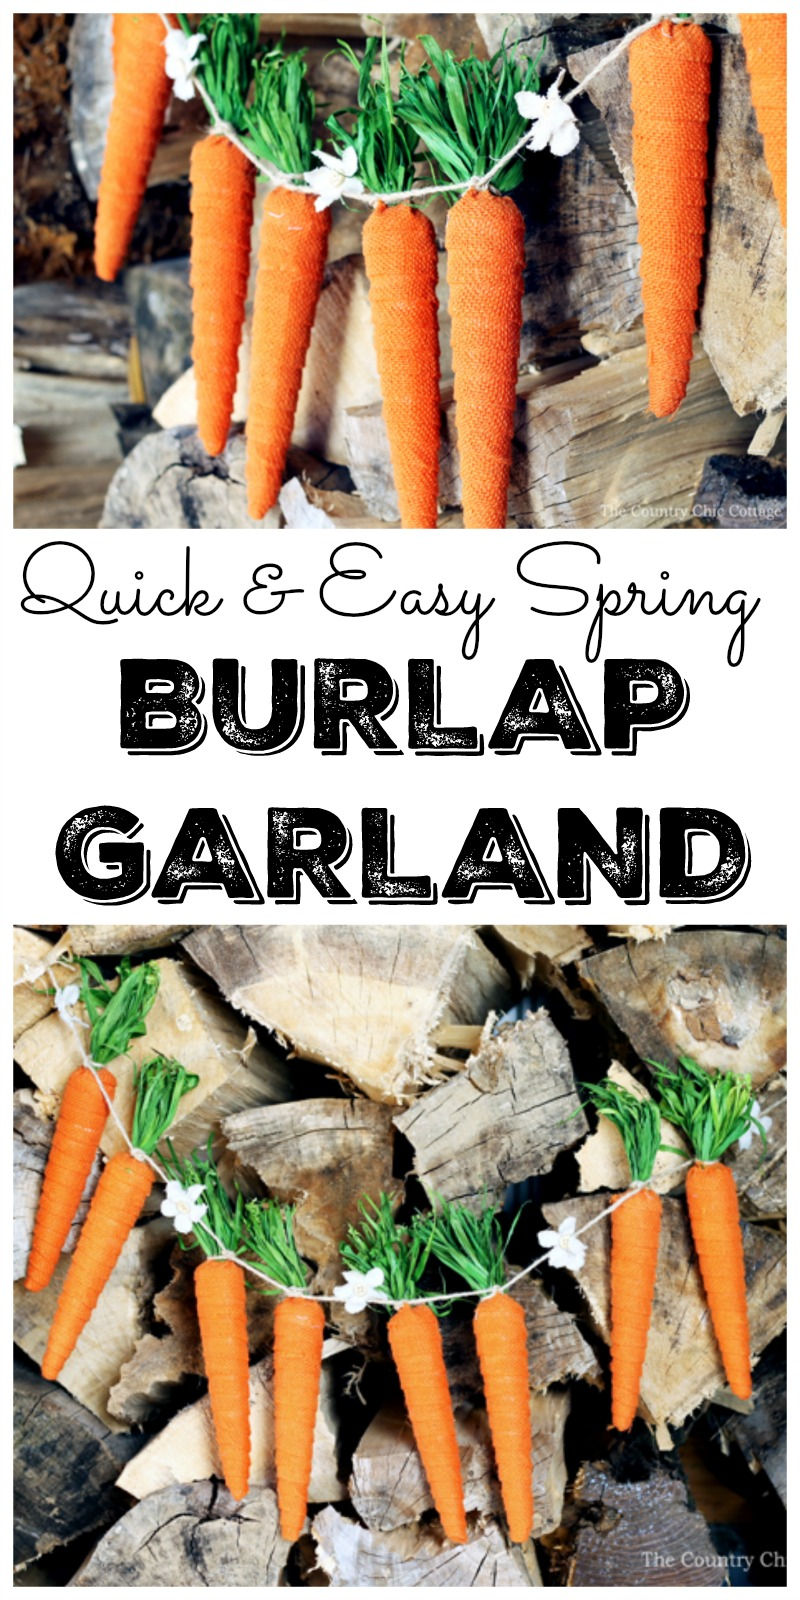 Make this quick and easy spring burlap garland for your home decor! A great project that just takes minutes to make!